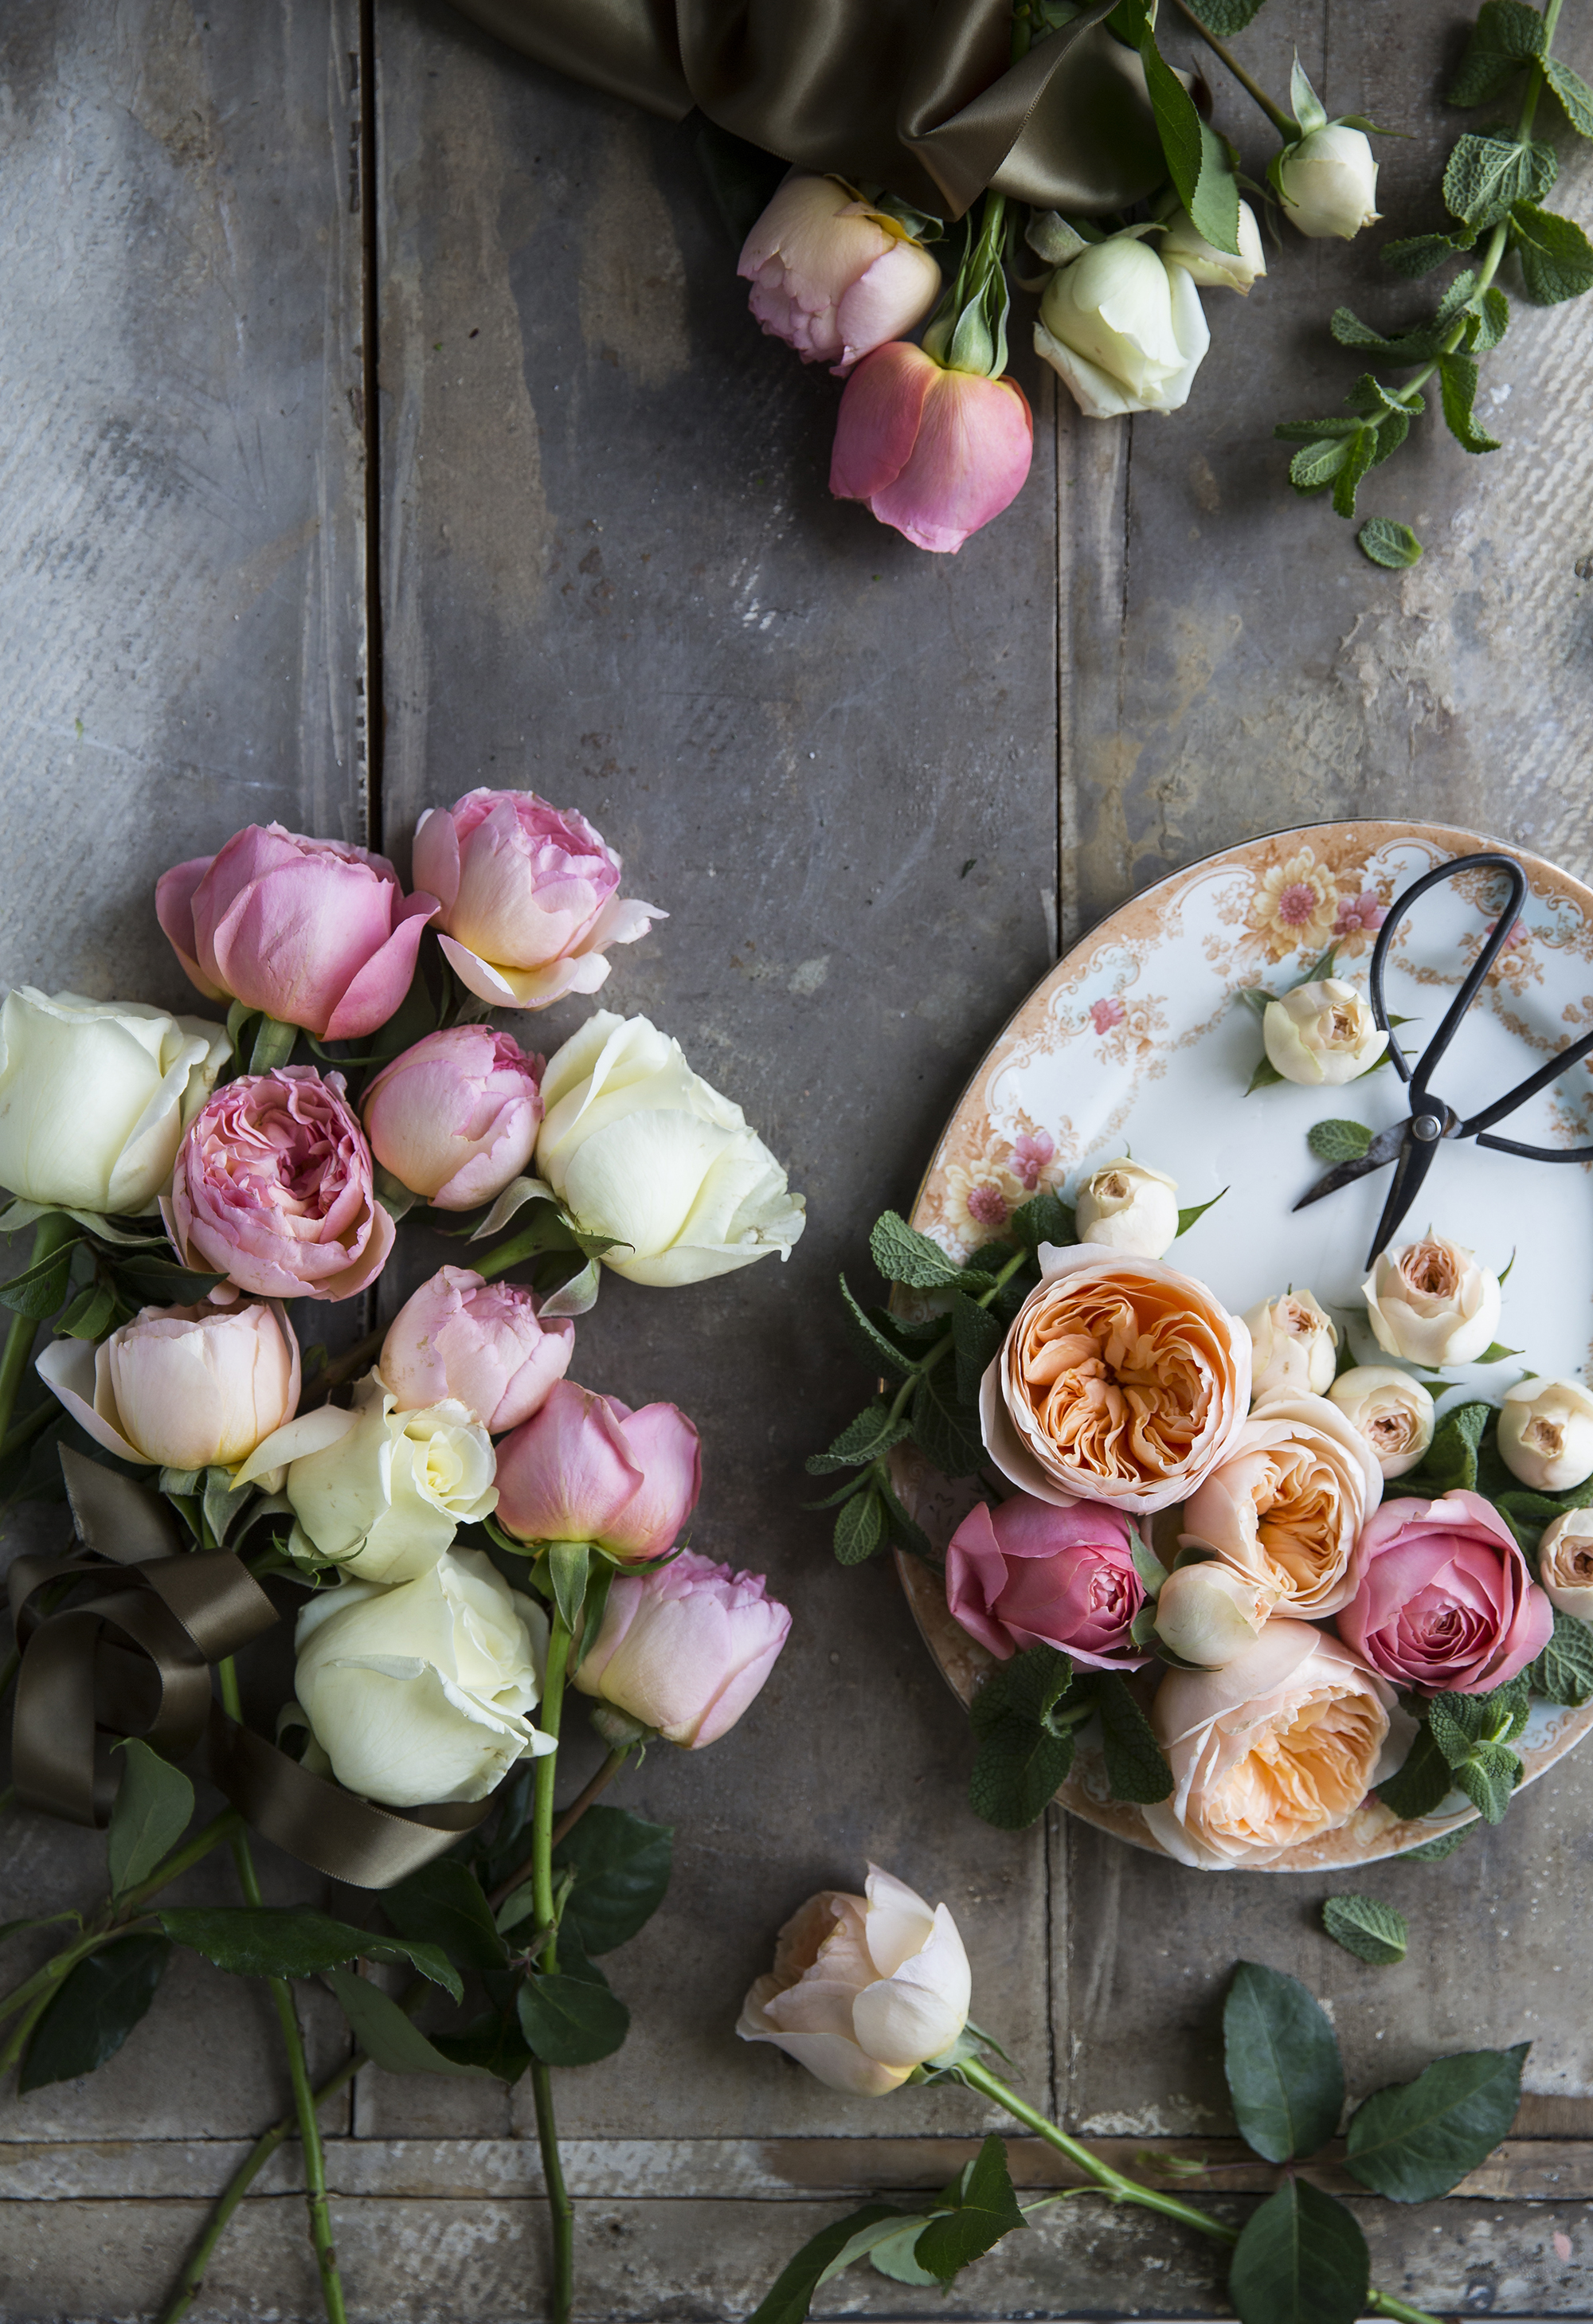 WIN a monthly delivery of flowers from the Real Flower Company